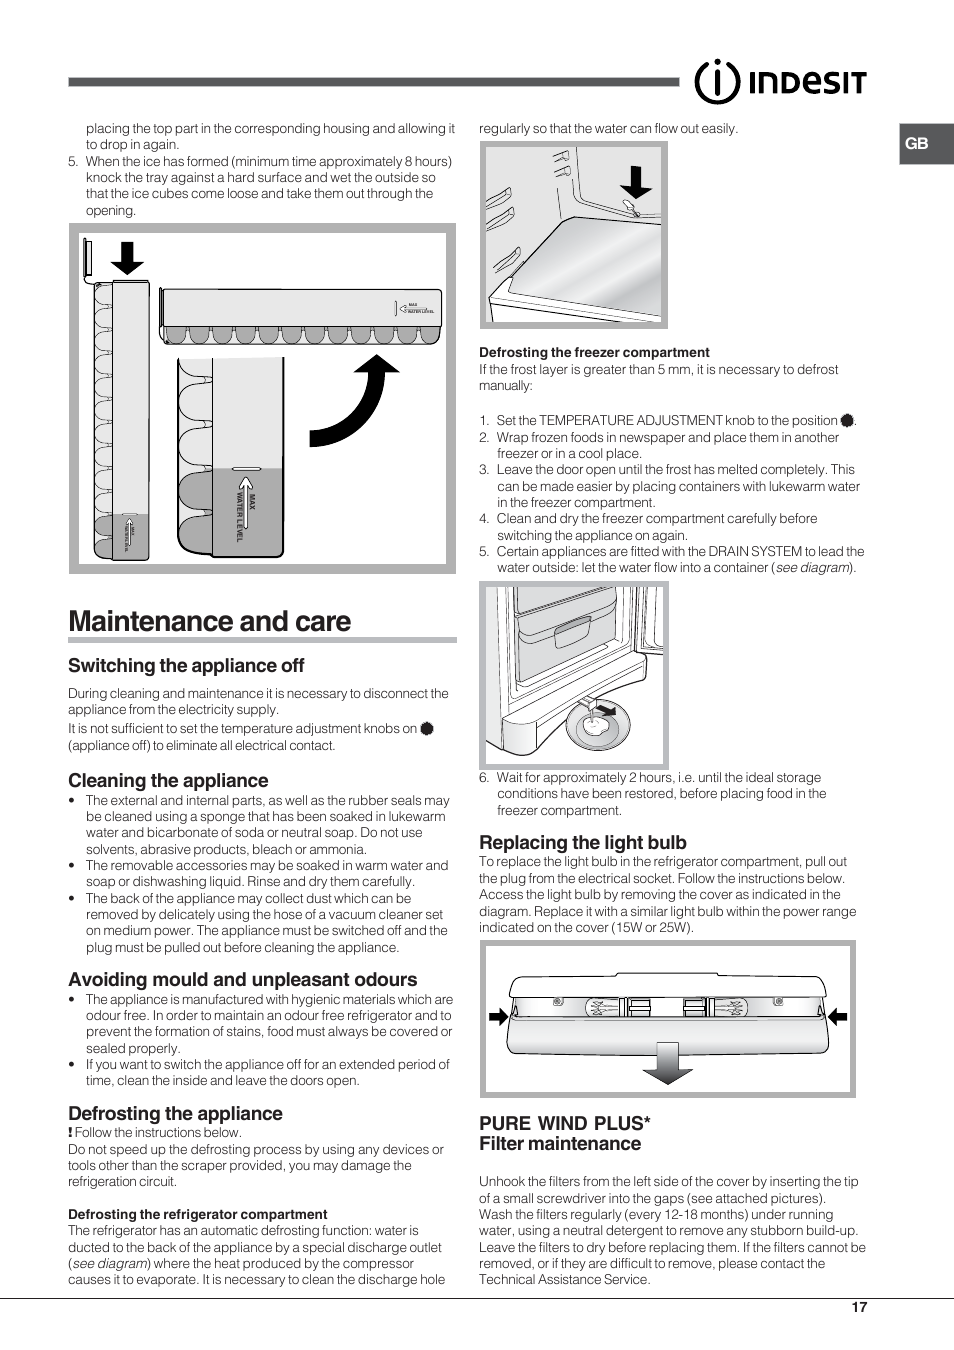 Maintenance and care, Switching the appliance off, Cleaning the appliance |  Indesit BAAN 13 X User Manual | Page 17 / 44